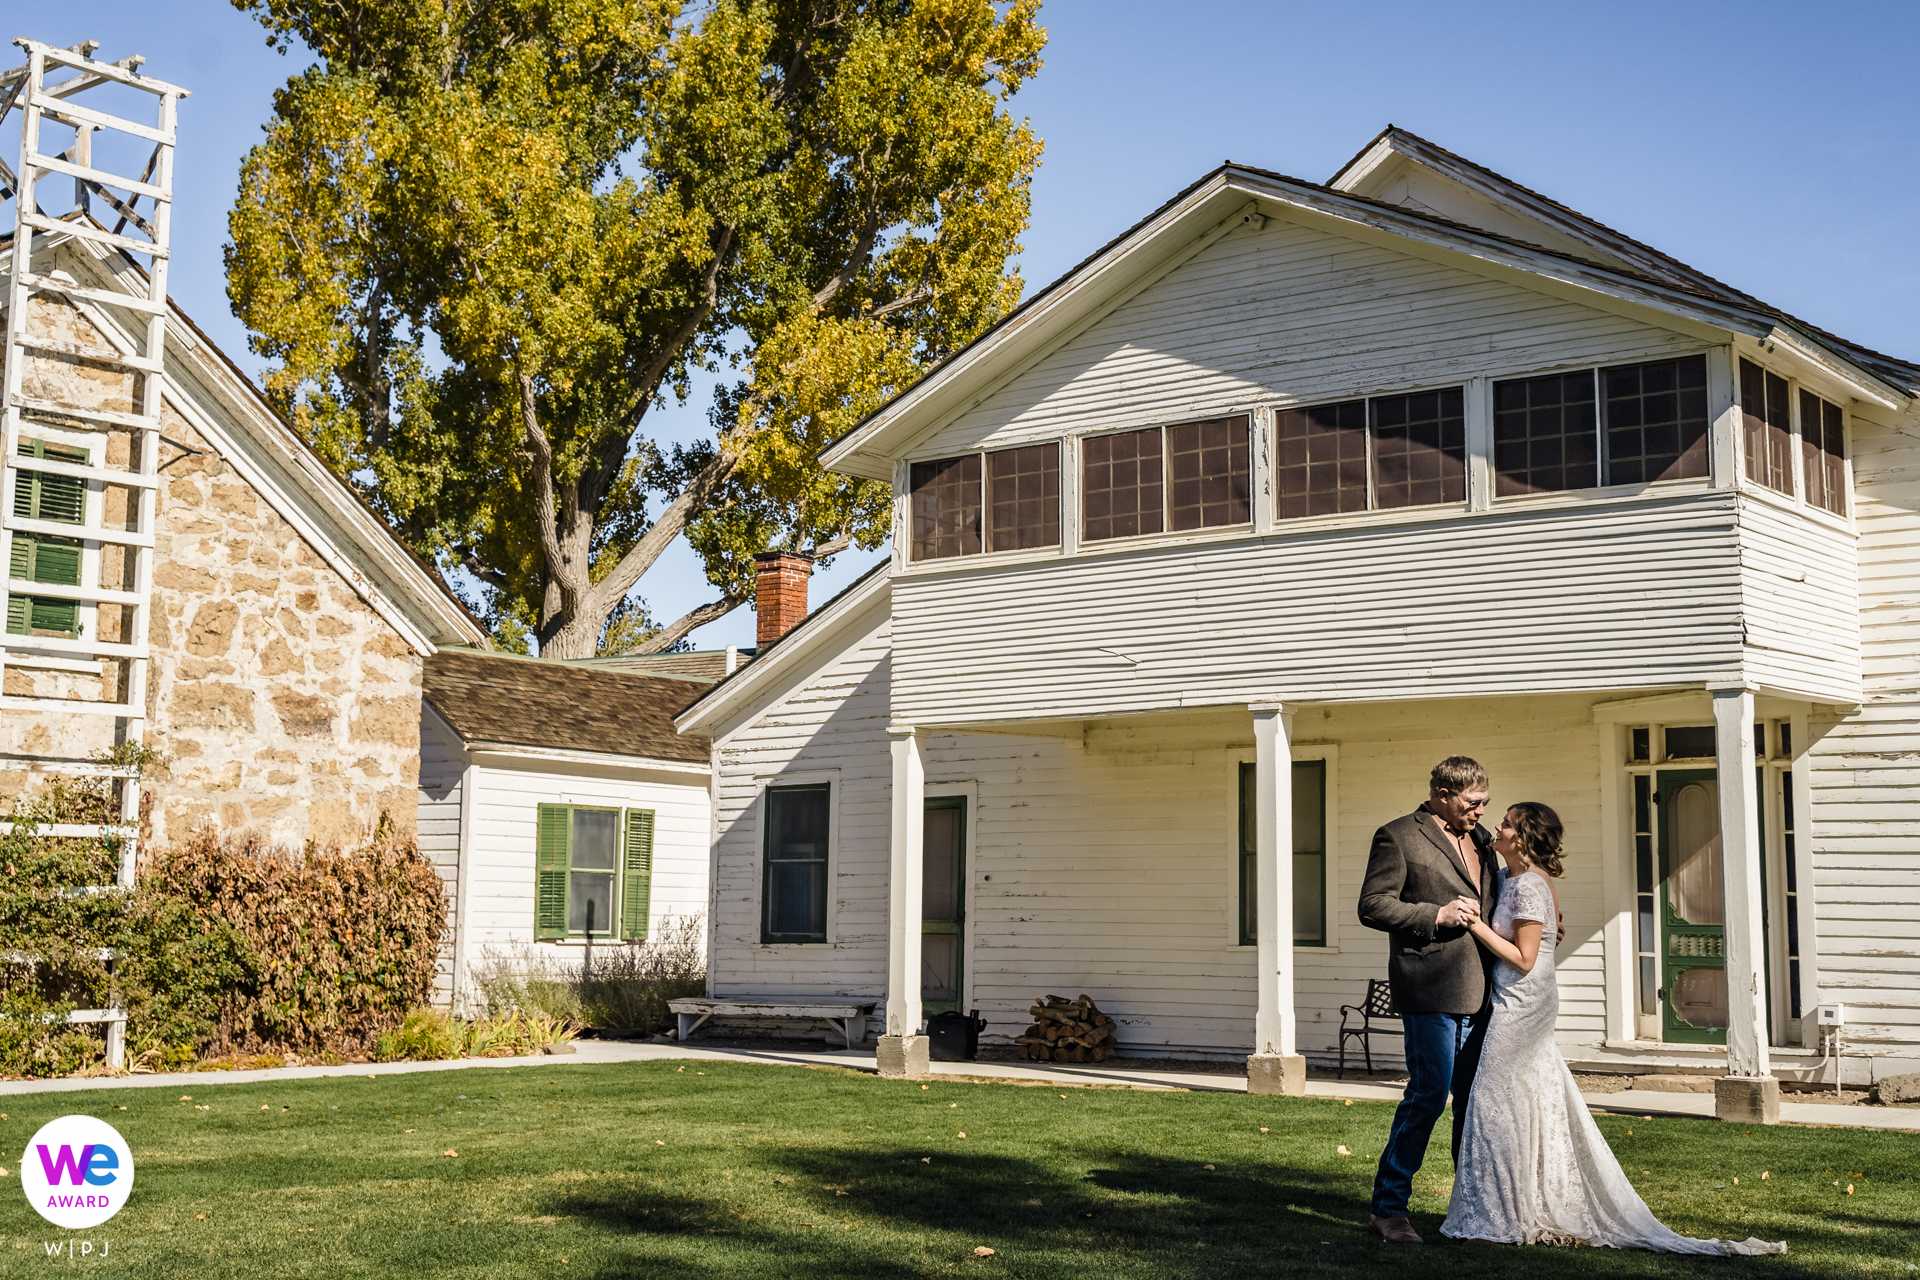 Dangberg Home Ranch Historic Park Wedding Venue Pics | Their first dance was a sweet event